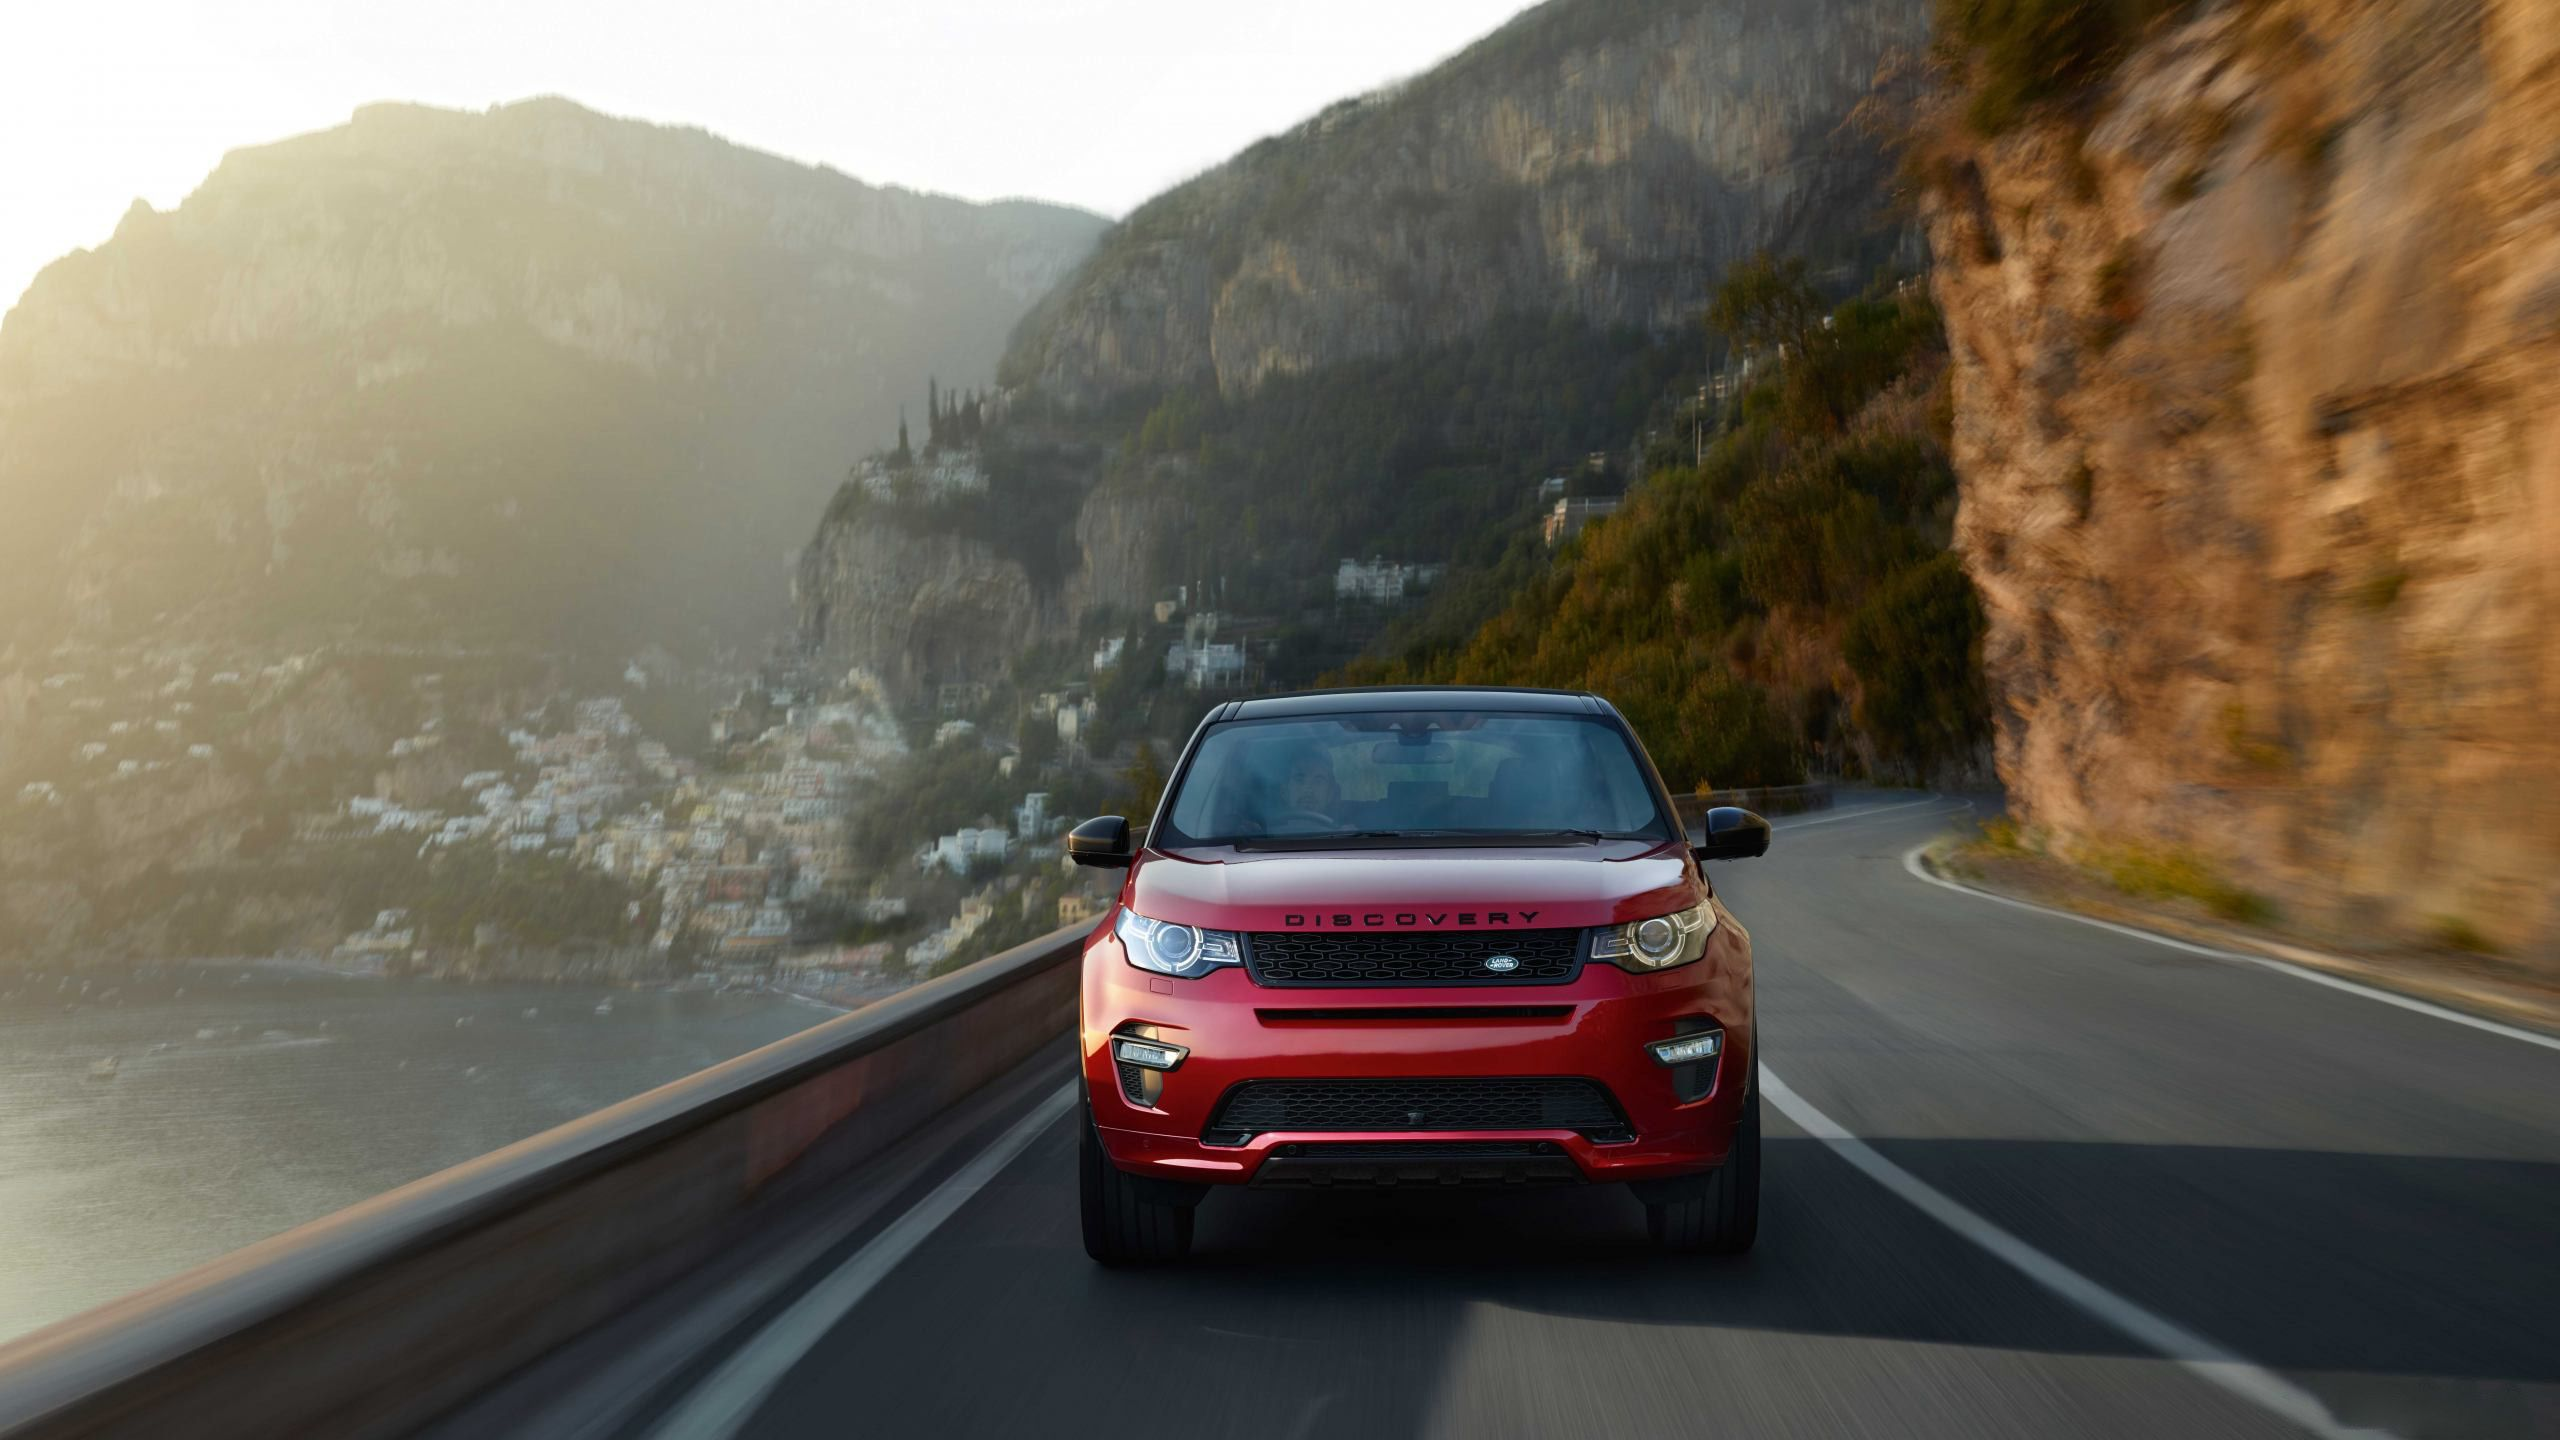 Used corris grey land rover range rover sport for sale surrey - 2016 Land Rover Discovery Sport Dynamic Red Check More At Http Hdwallpaperfx